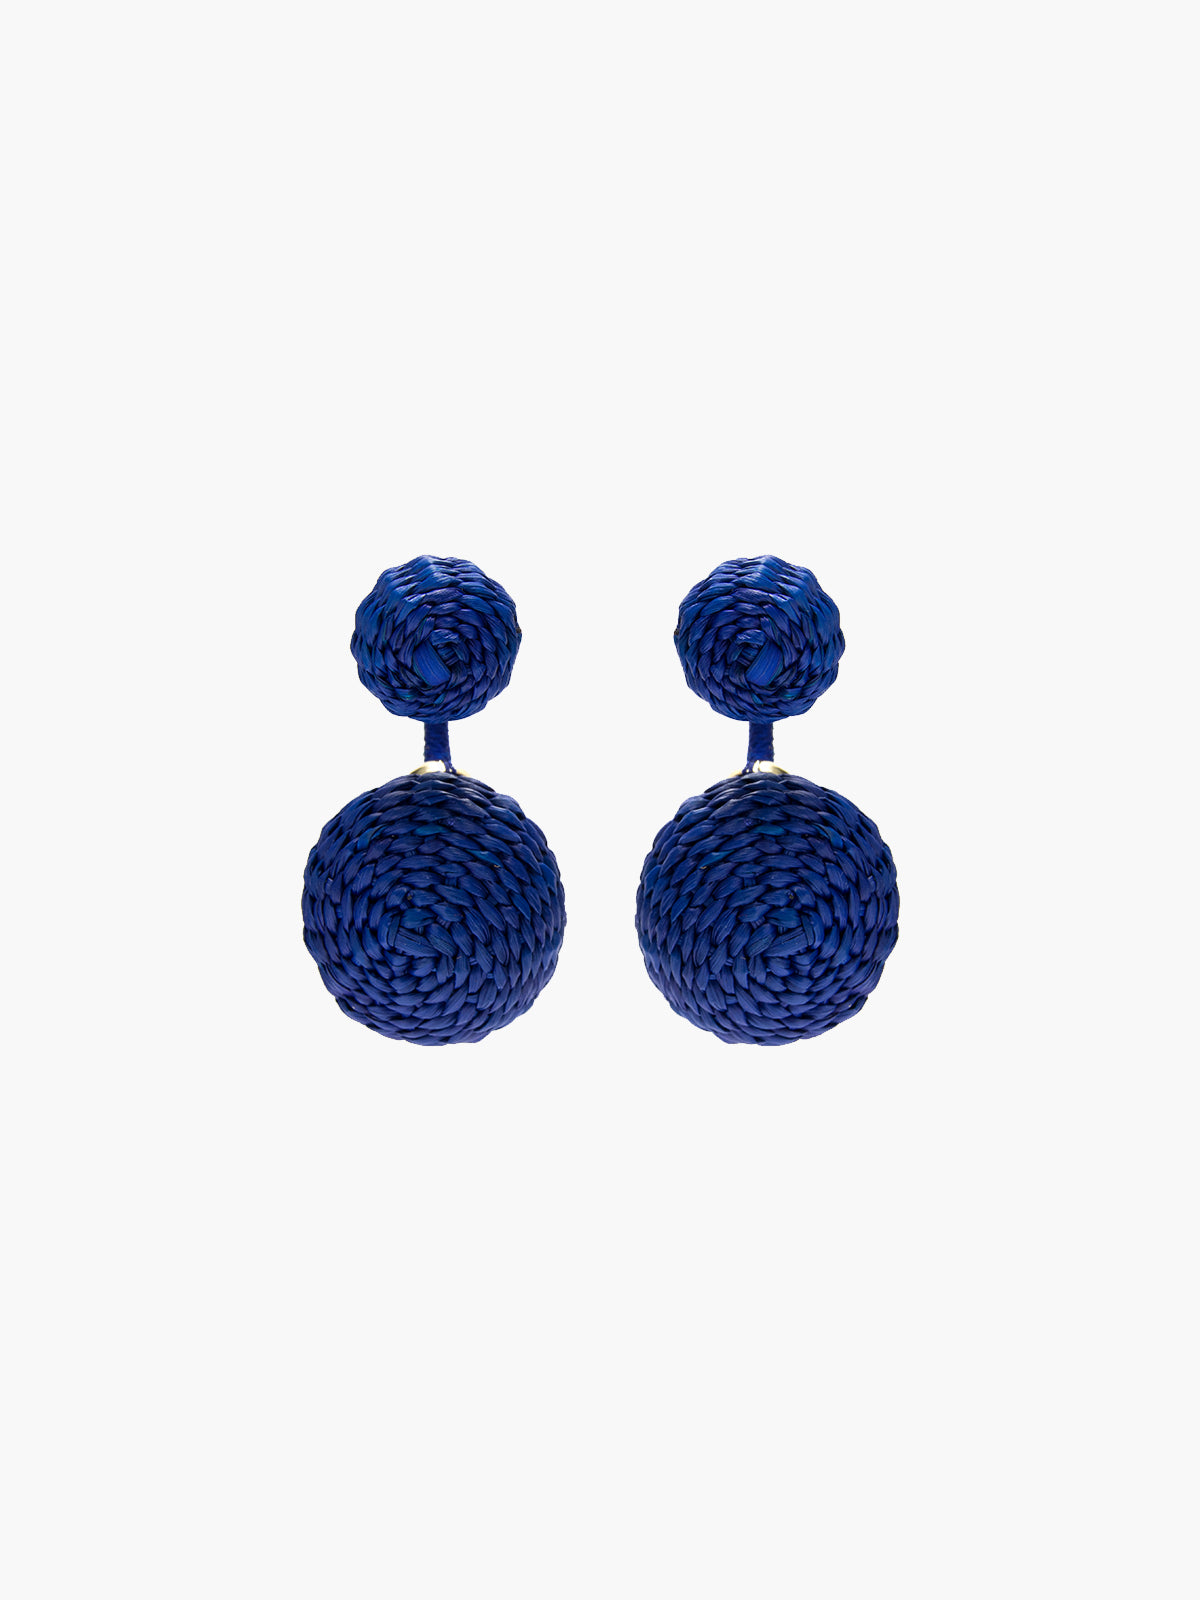 Duo Dreams Earrings